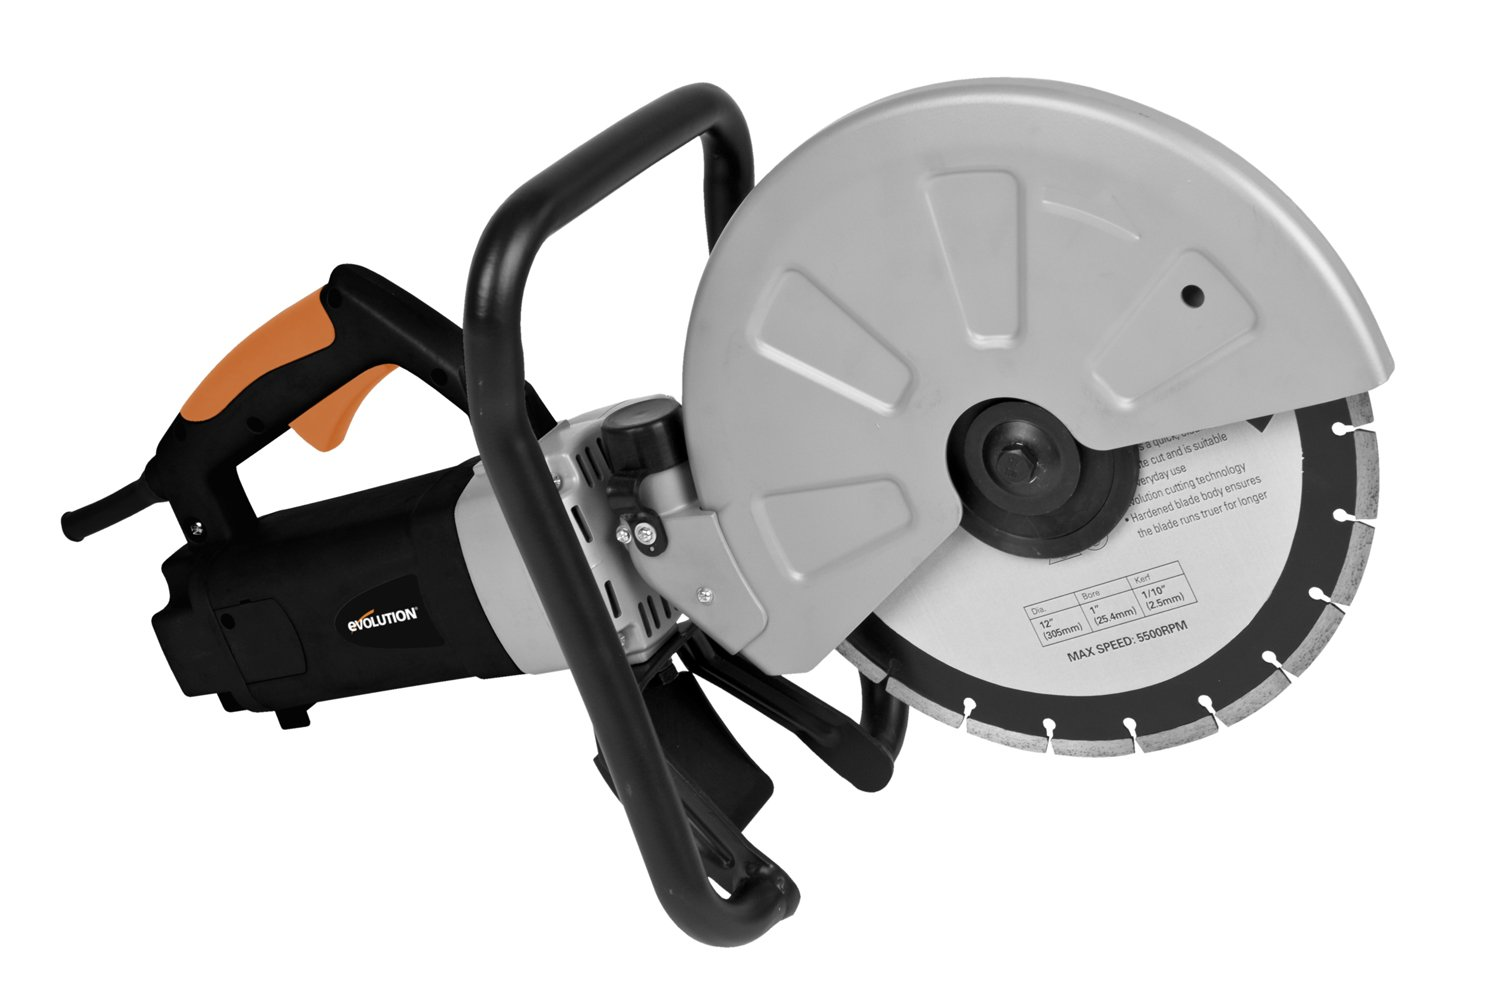 Evolution DISCCUT1 12'' Disc Cutter, Orange by Evolution Power Tools